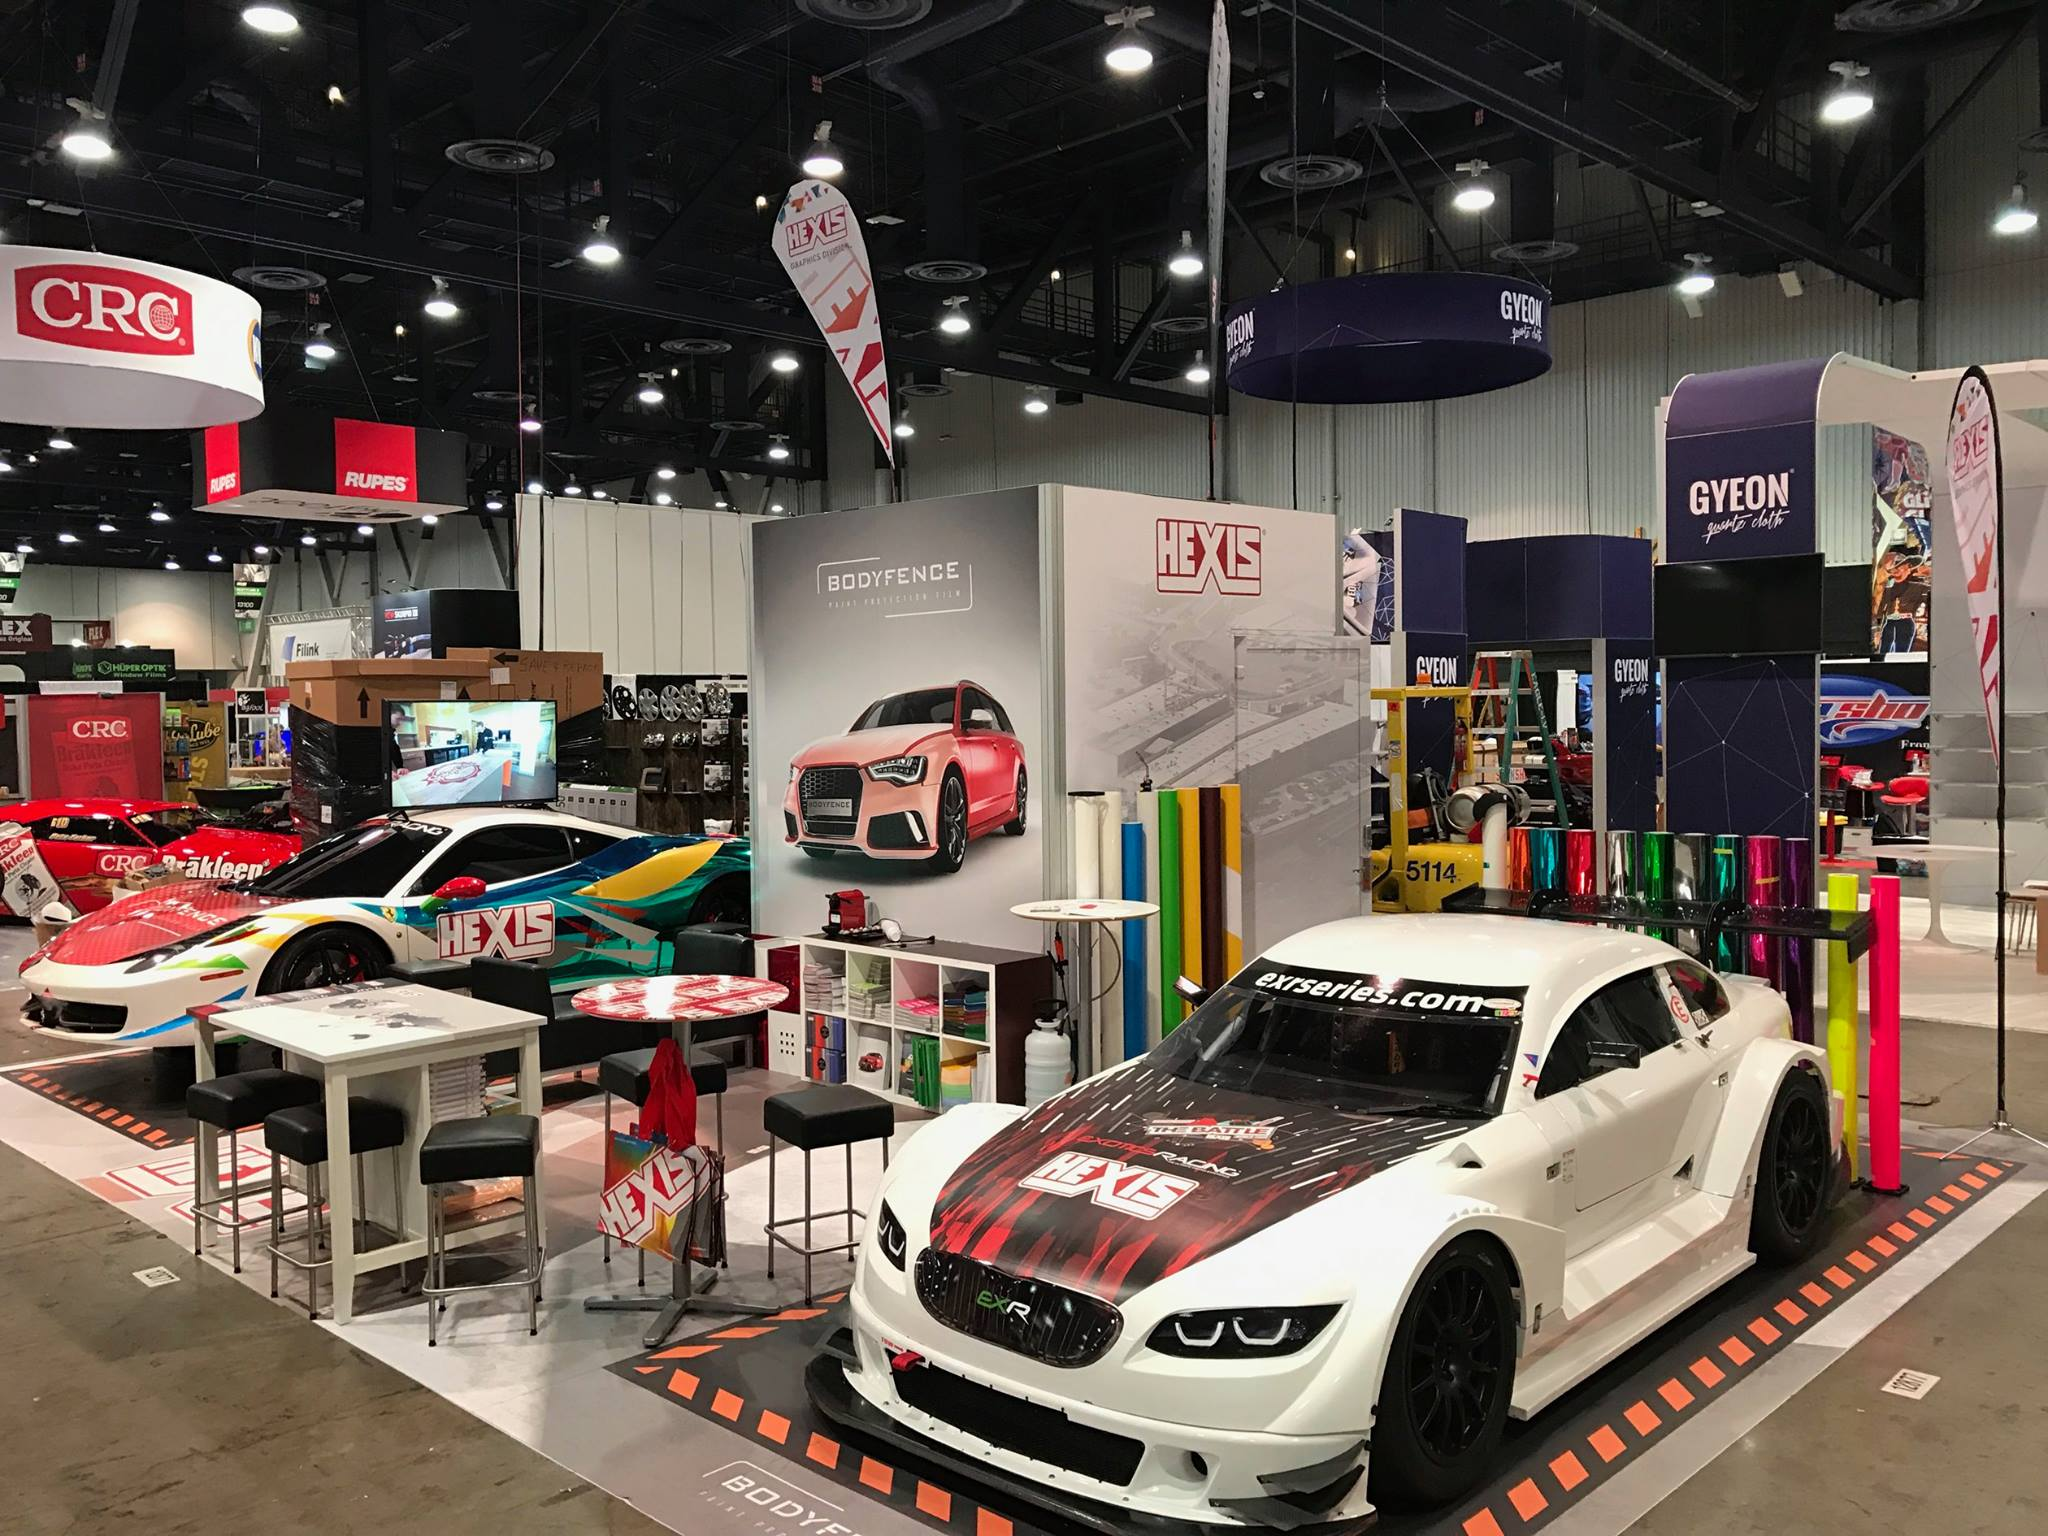 HEXIS At SEMA Show In Las Vegas HEXIS Graphics - Car show in vegas today